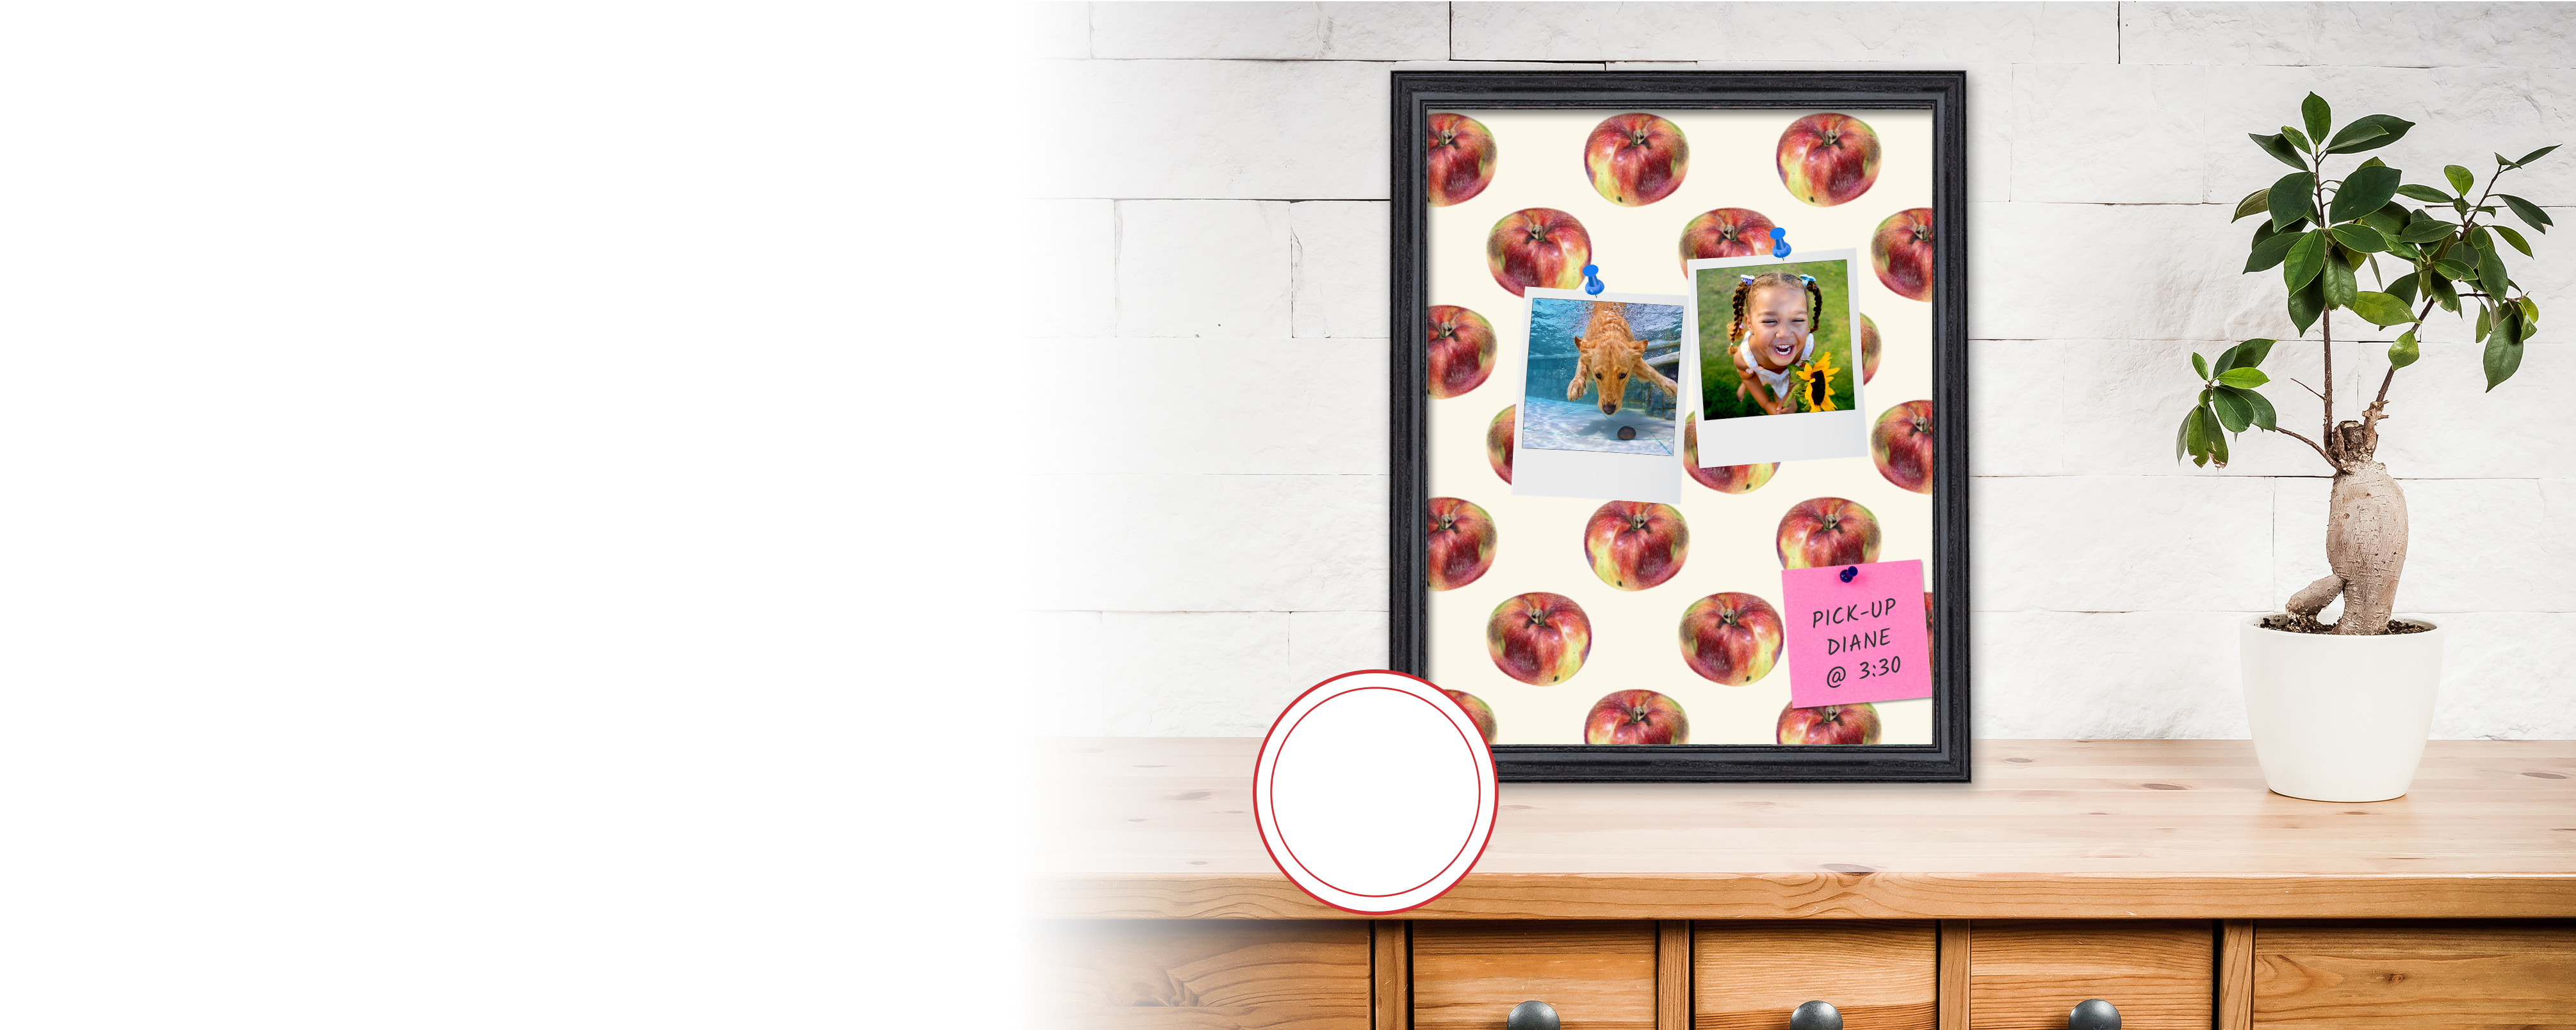 Custom printed cork board lifestyle image with red apple design